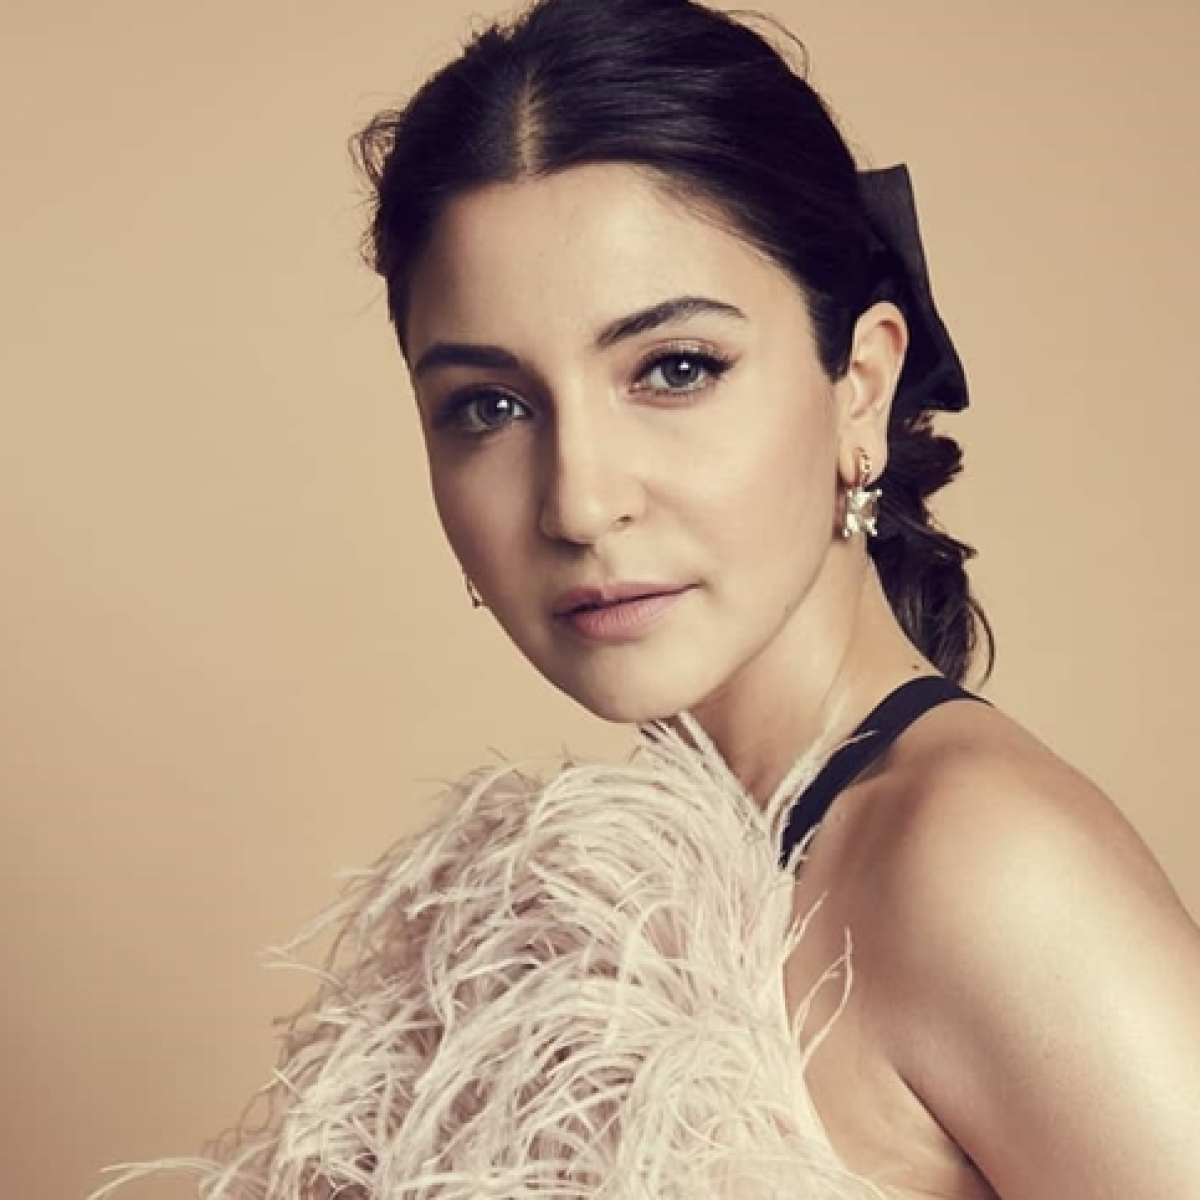 Anushka Sharma criticizes China's controversial dog meat festival Yulin: 'What will it take for them to ?'